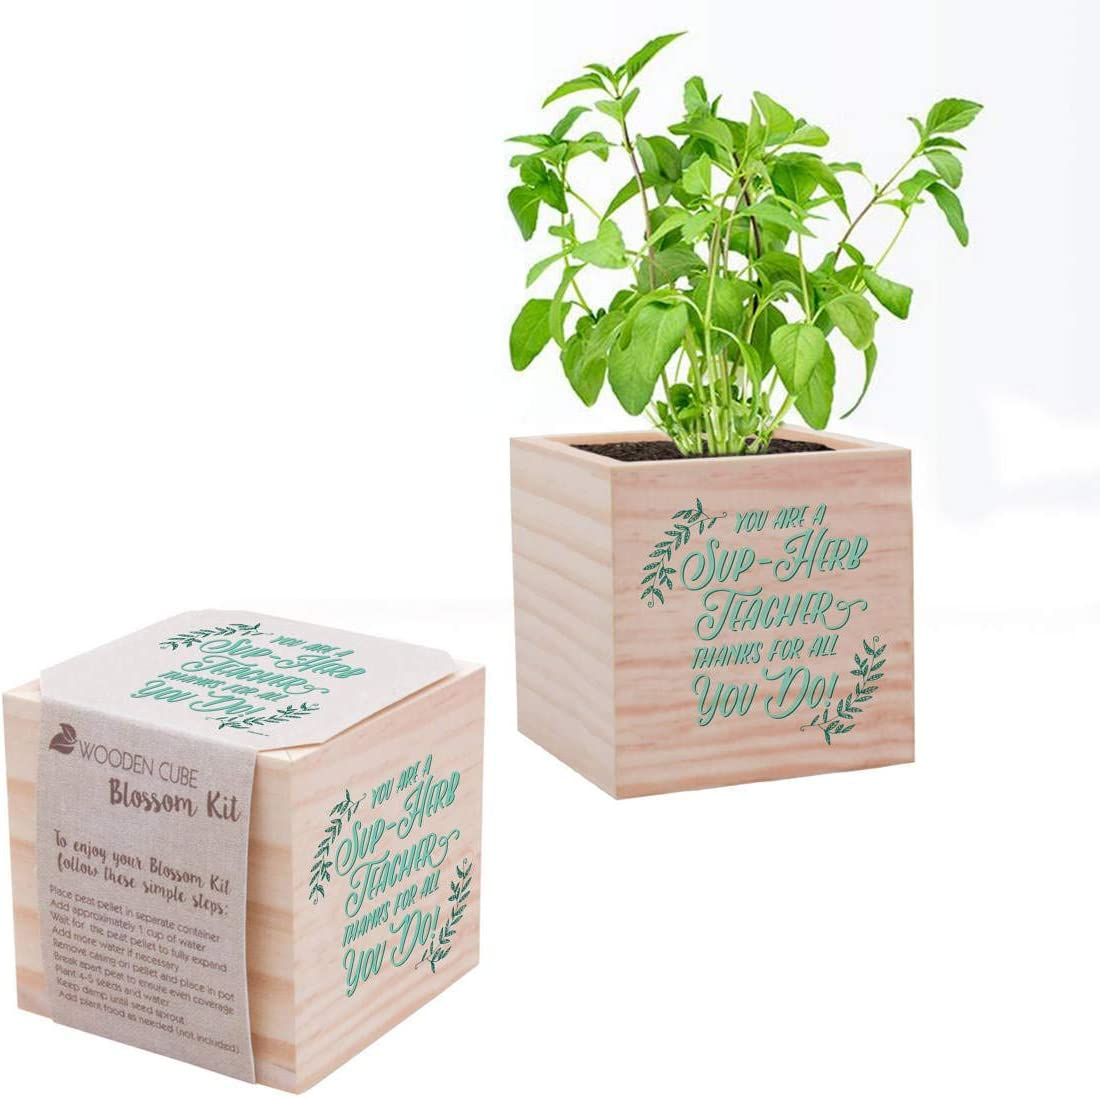 An image of a desk accessory wooden plant kit with basil planted in it.